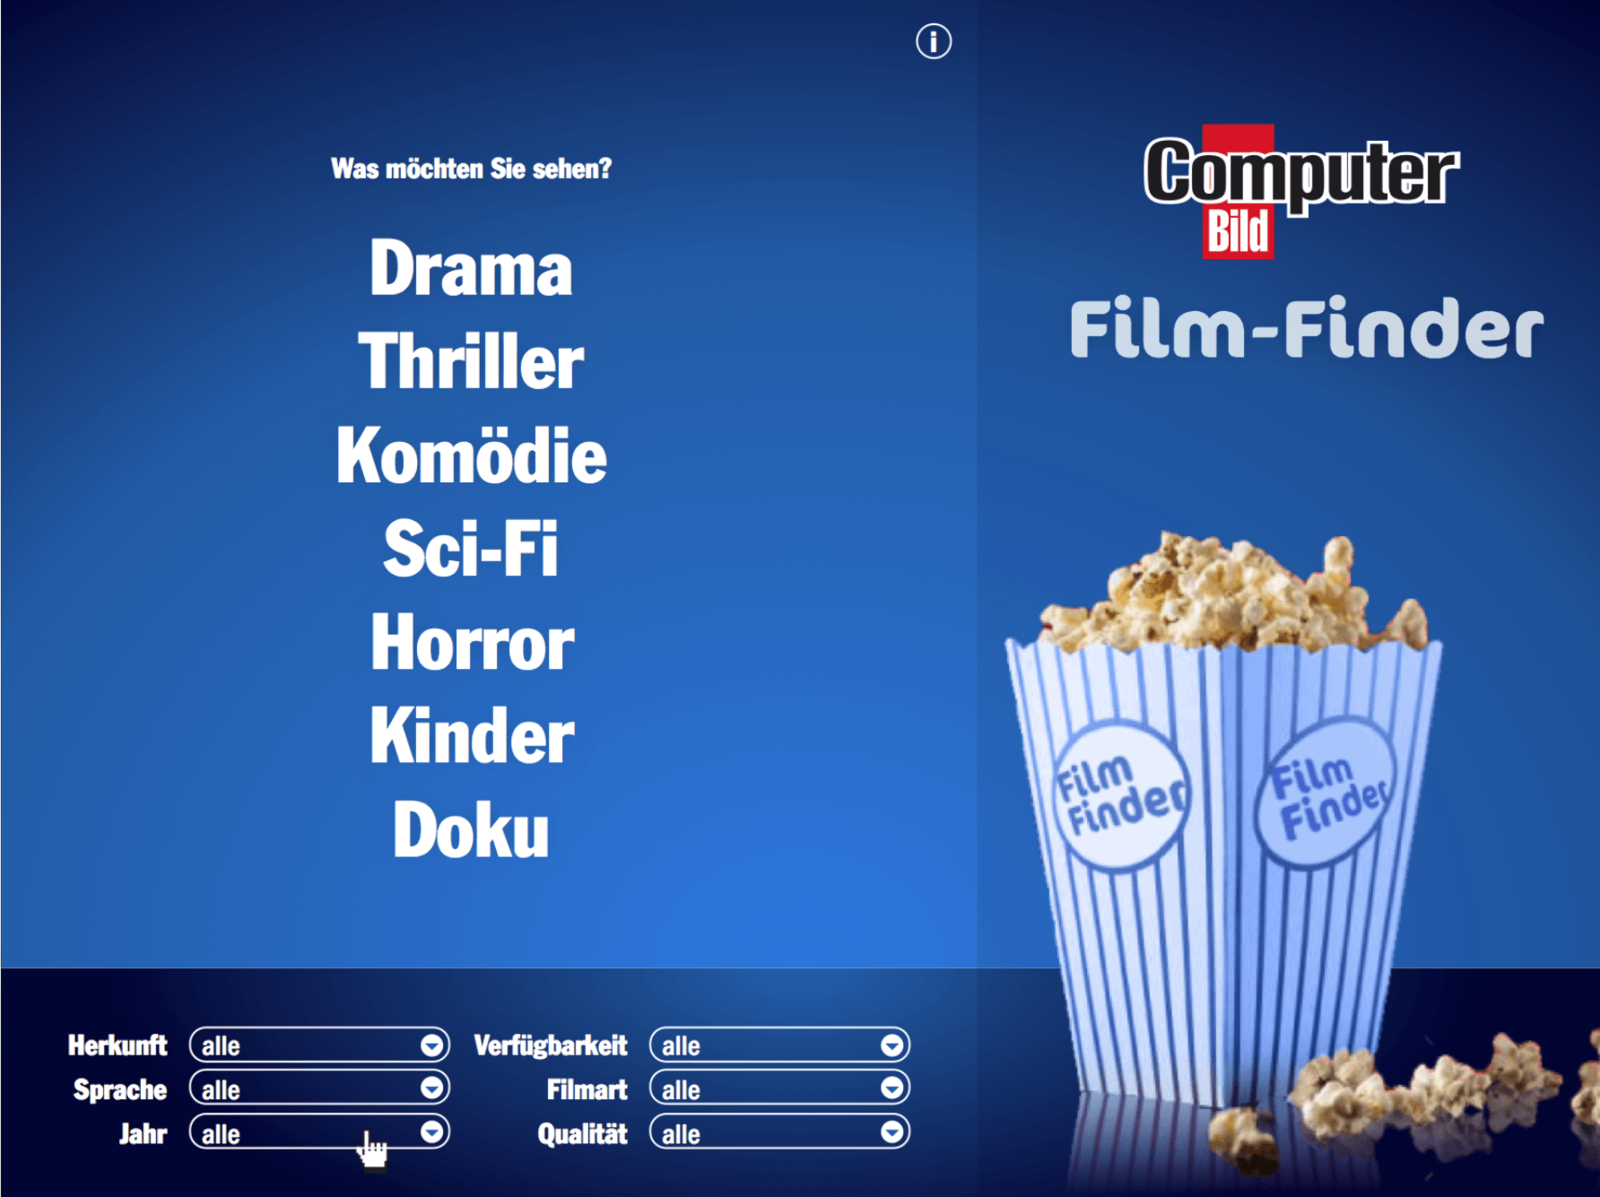 GUI für ComputerBILD Film-Finder